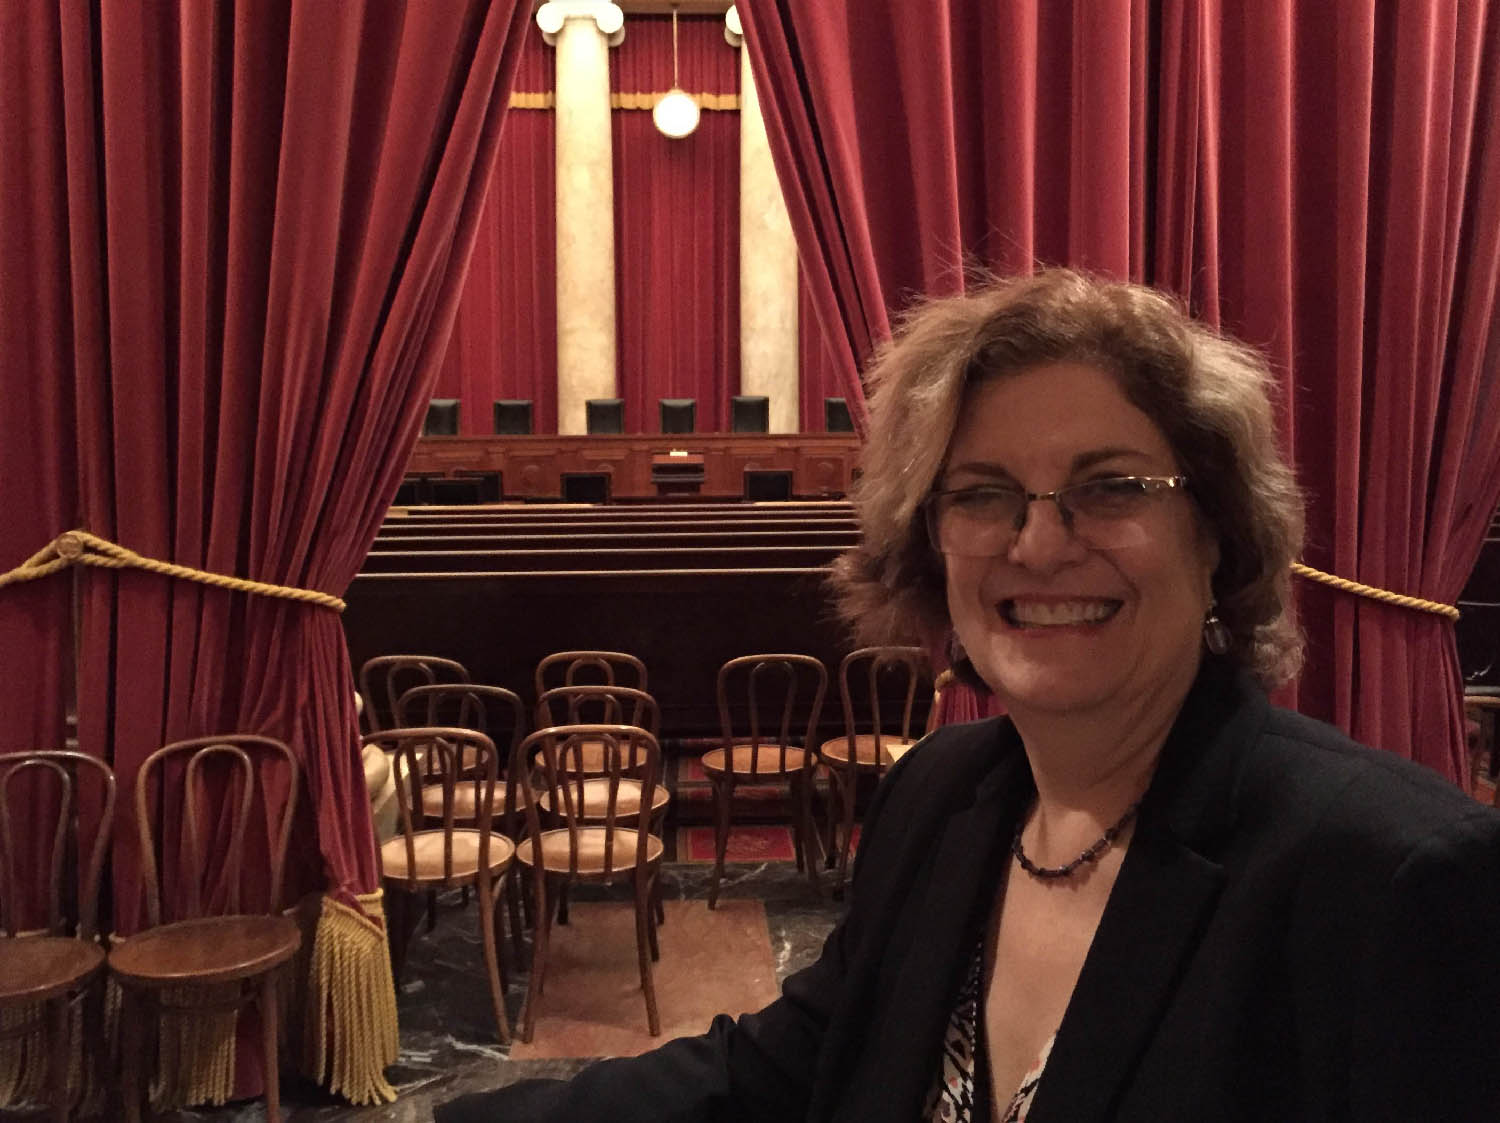 LBJ Senior Lecturer Michele Deitch in the courtroom at the U.S. Supreme Court on the day of her admittance to the Supreme Court Bar Association